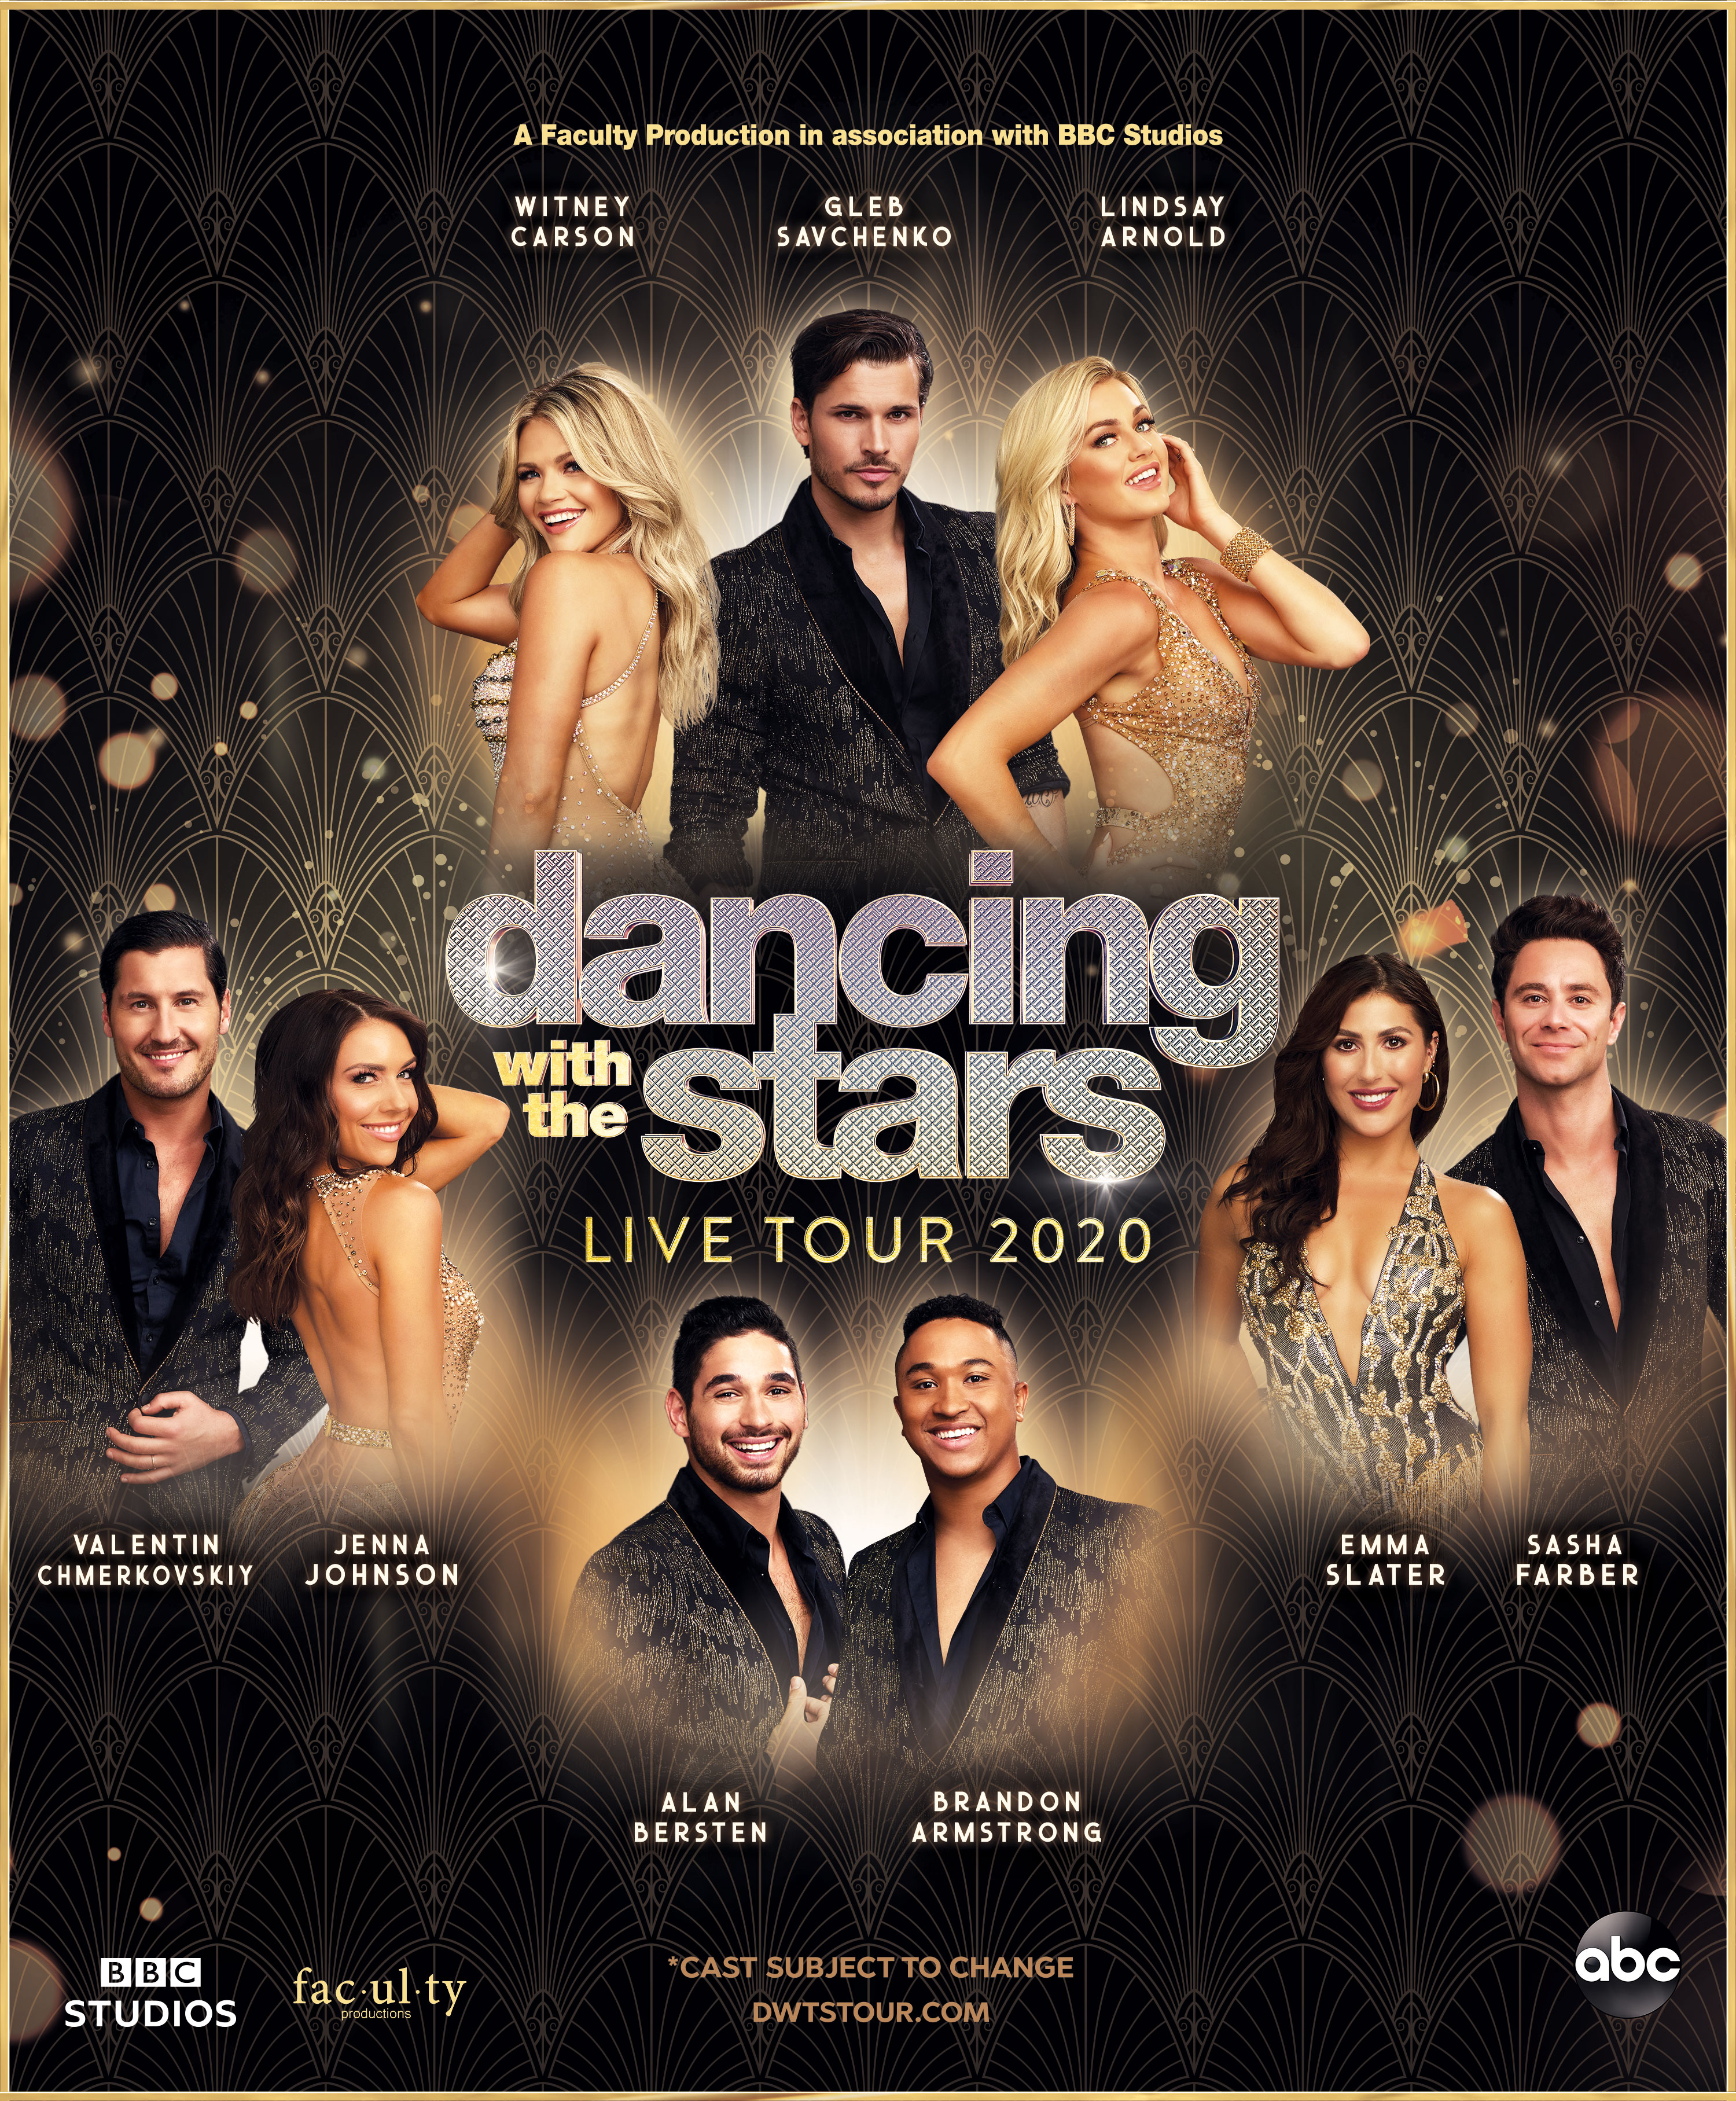 'Dancing With the Stars: Live Tour' Returns With Its Longest Run to Date